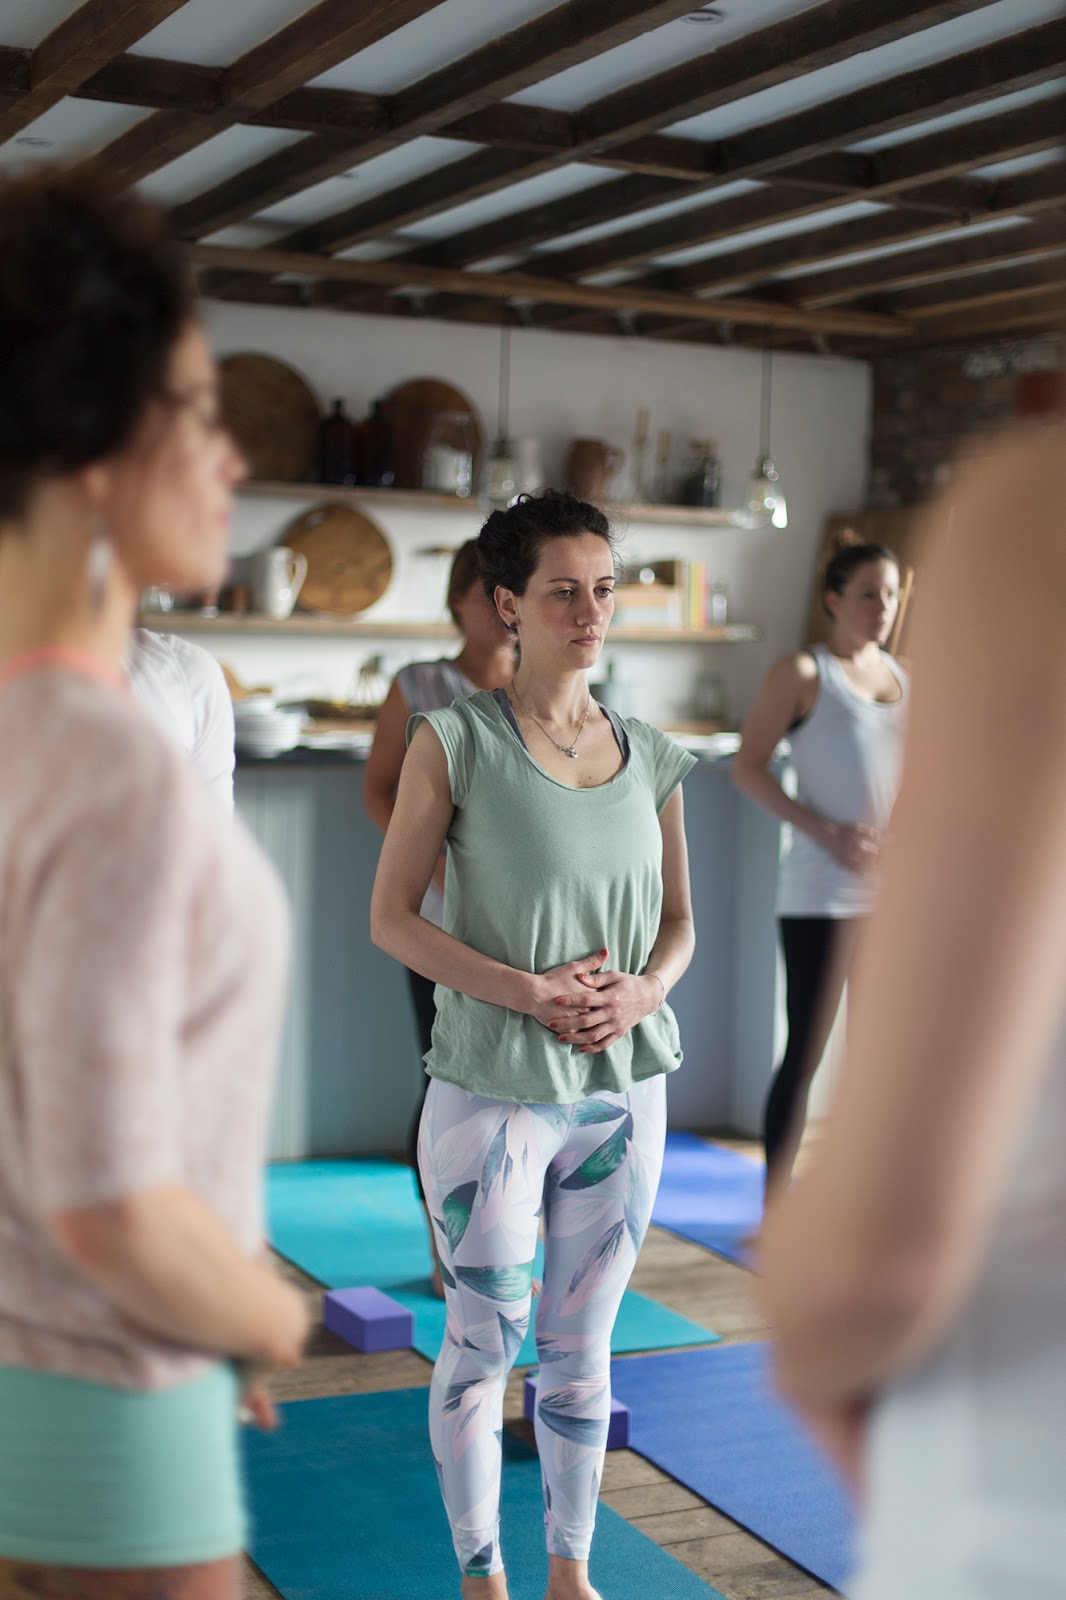 Yoga Brunch Club March 2018 Kasia Kiliszek Murray May's food drink Bristol The Forge